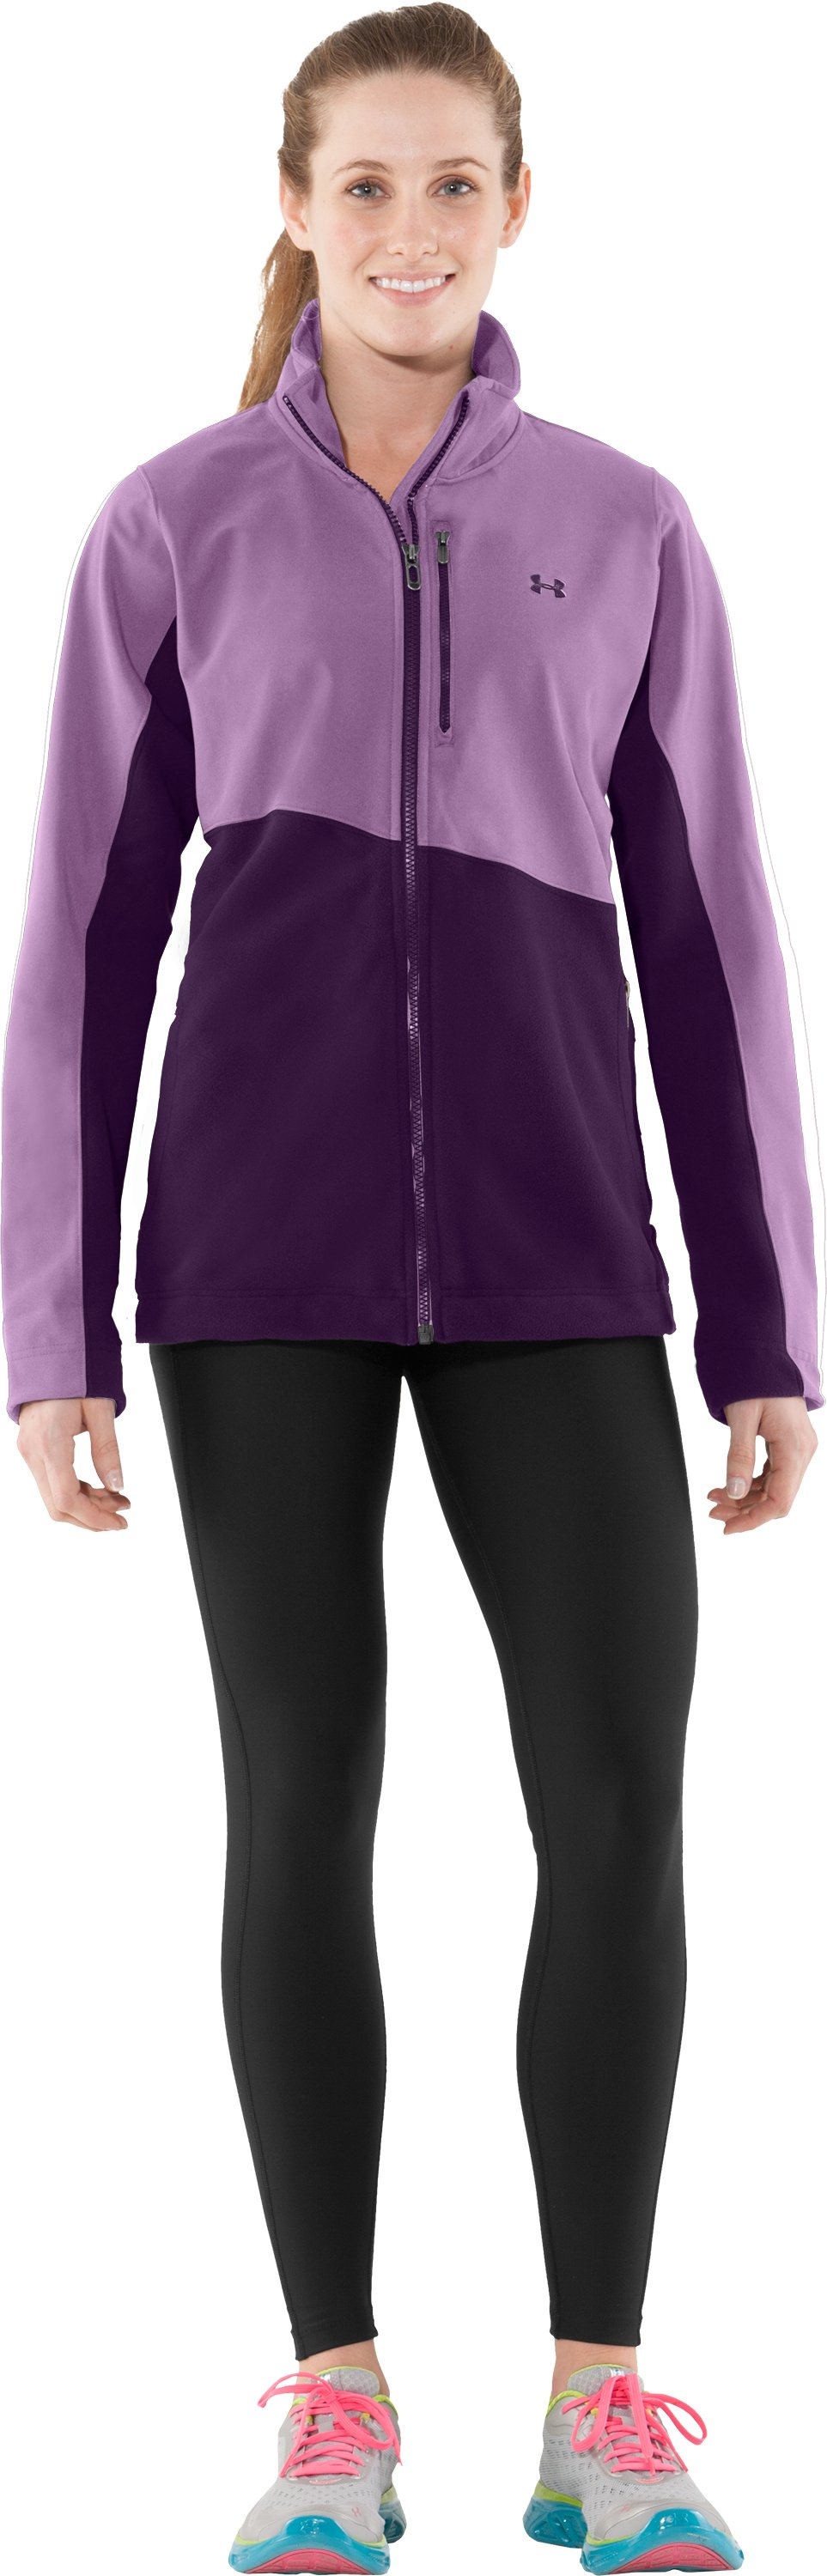 Women's Muroc Jacket, Sugar Plum, zoomed image